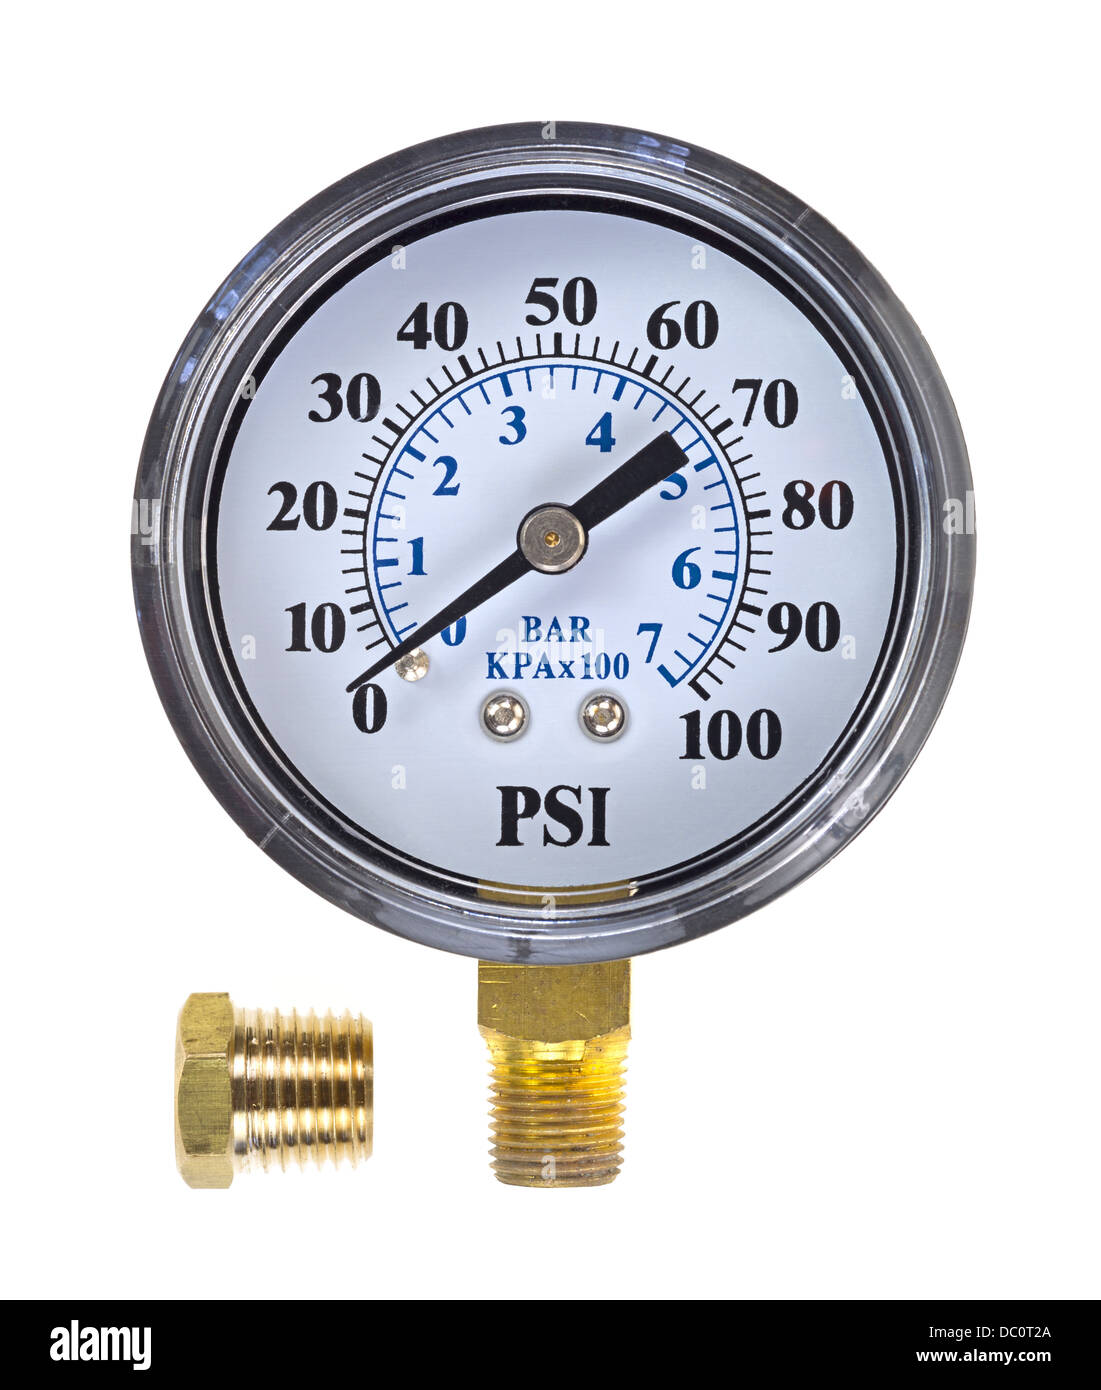 A new water pressure gauge with a brass coupling on a white background. - Stock Image